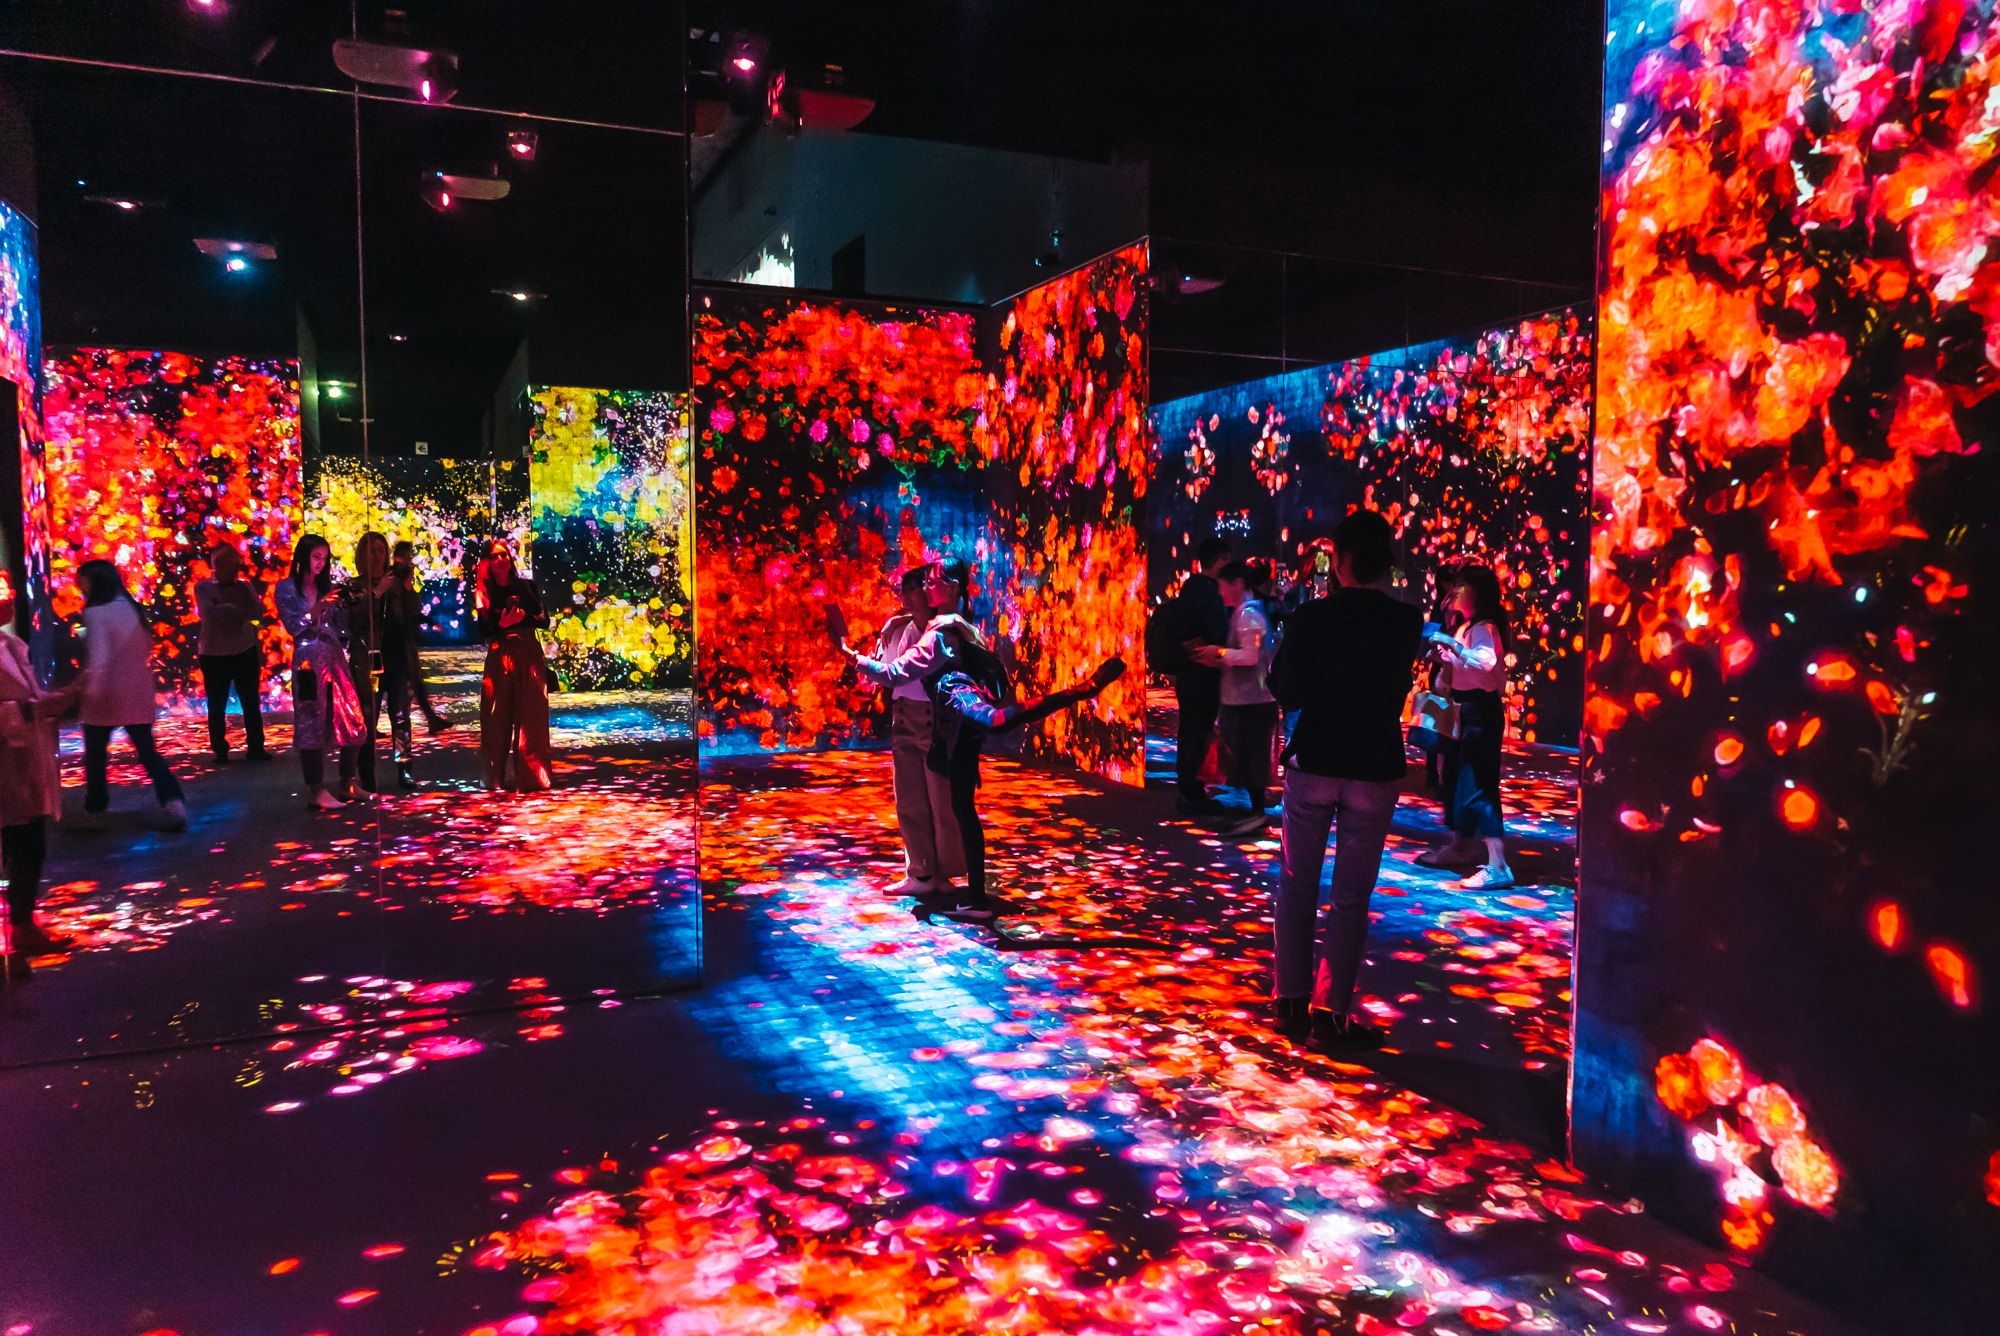 Forest of Flowers and People: Lost, Immersed and Reborn